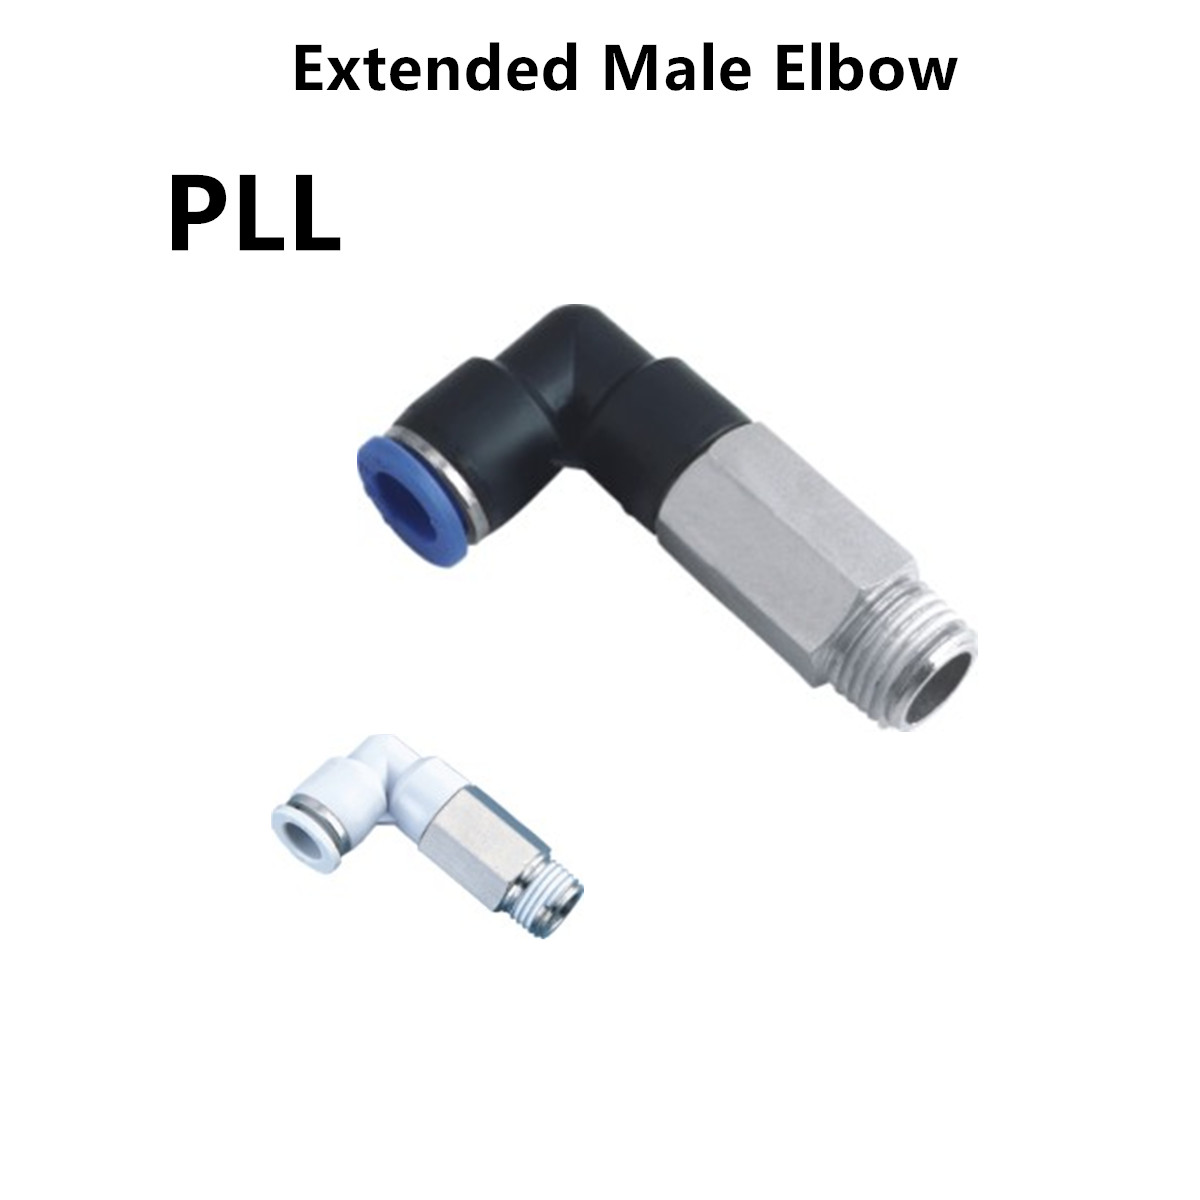 Extended Male Elbow